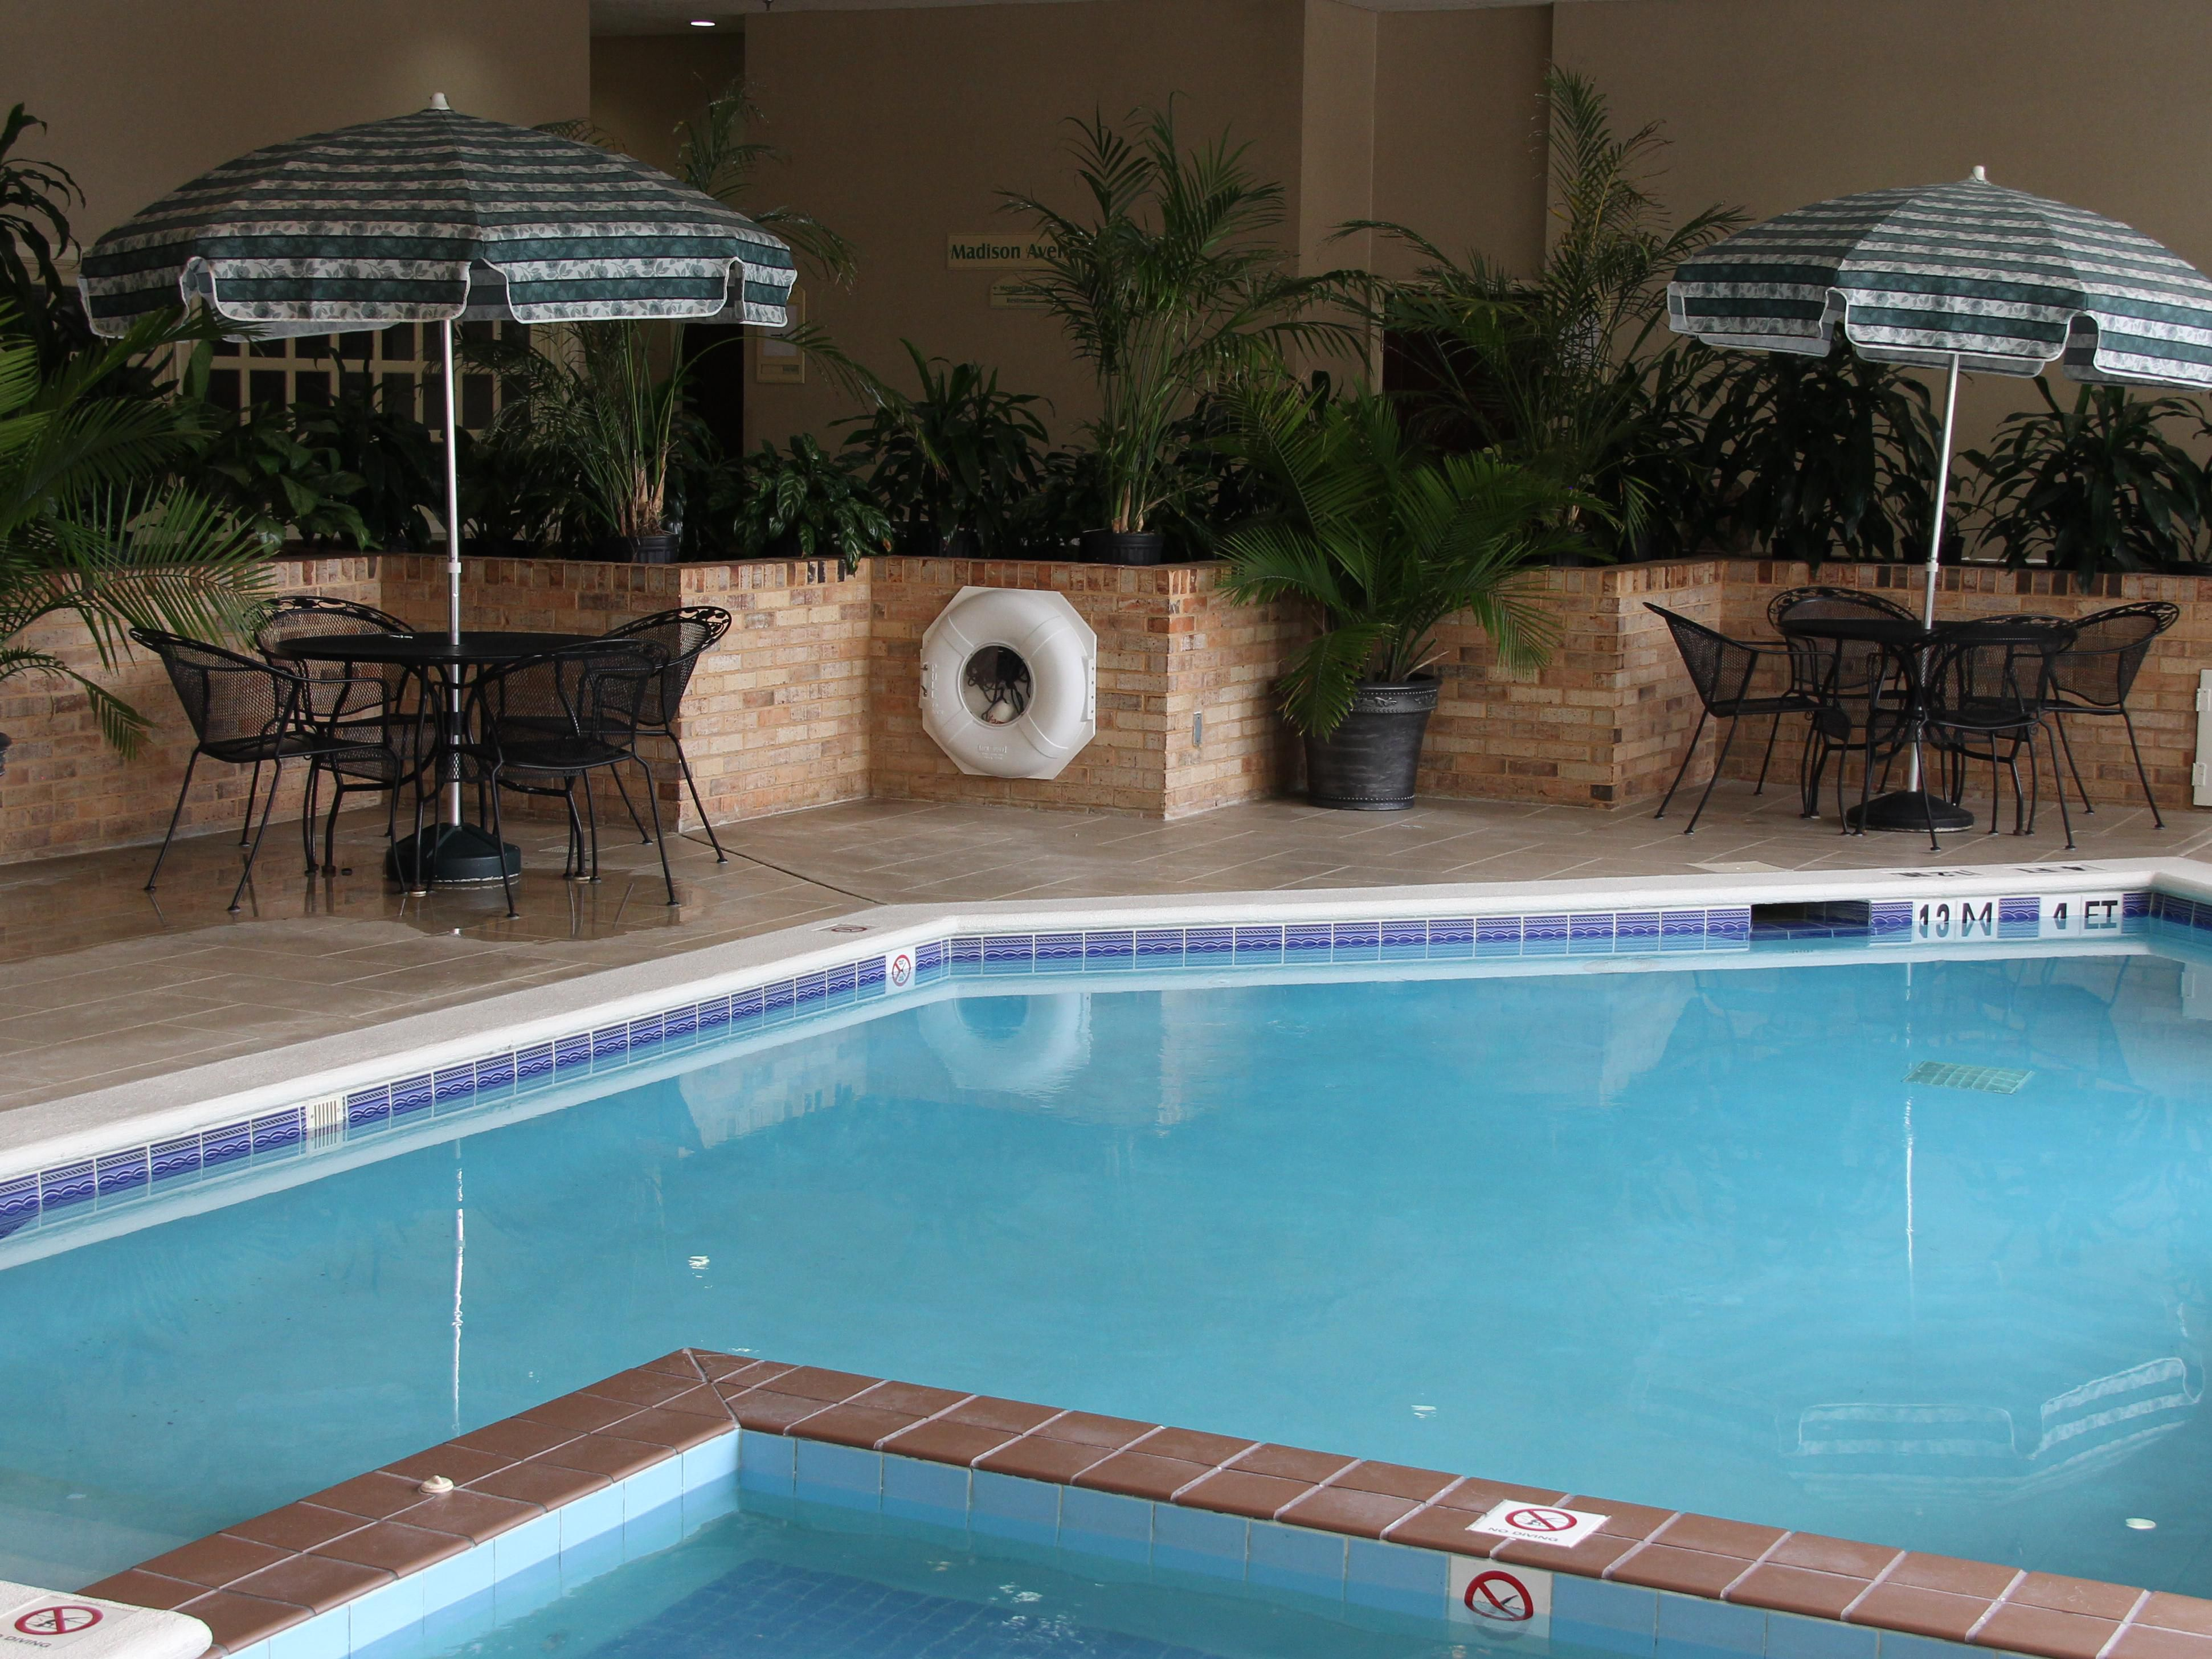 Holiday Inn Research Park Indoor Swimming Pool